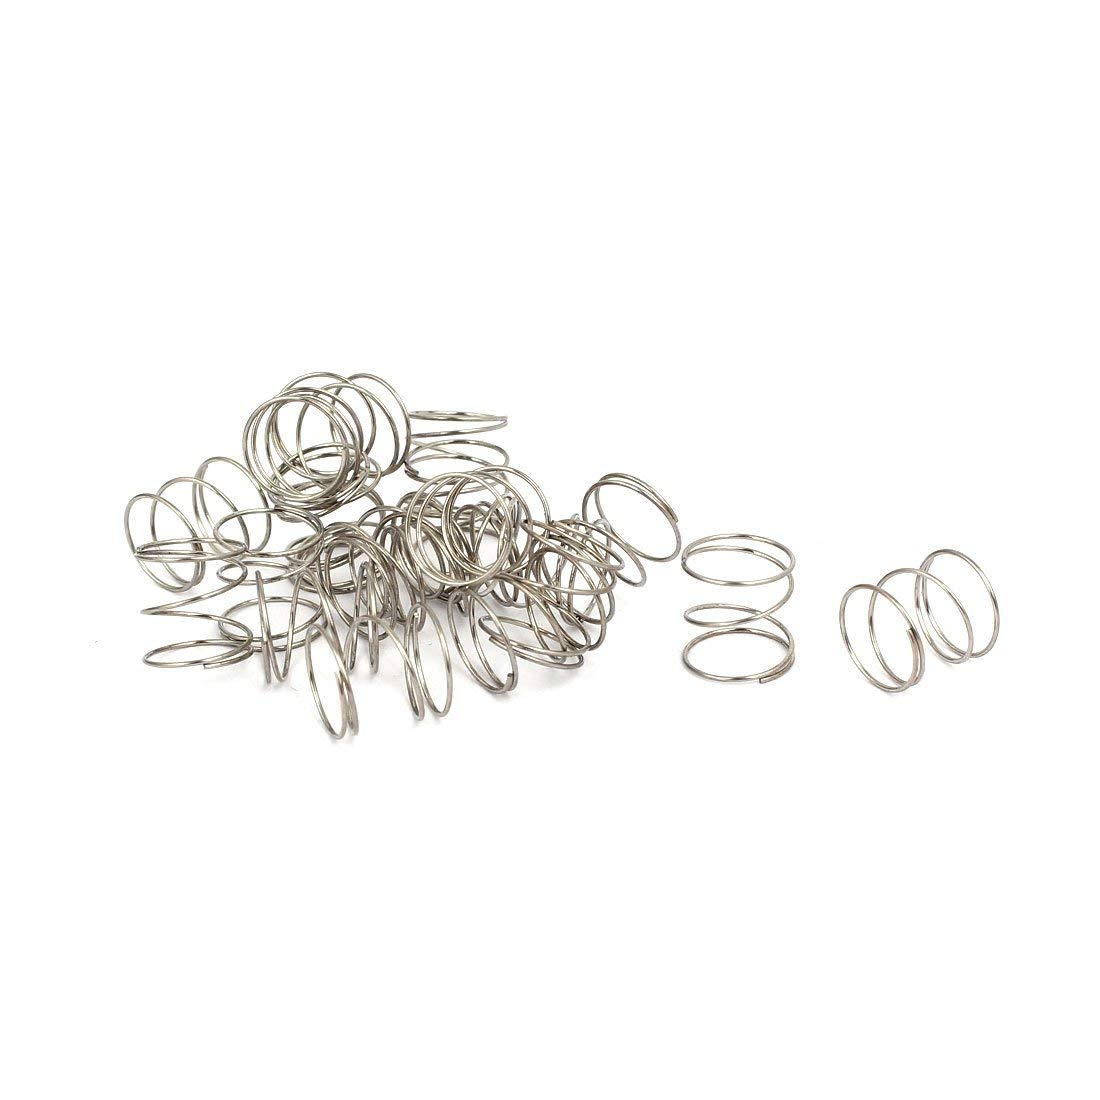 0.5mmx10mmx10mm 304 Stainless Steel Compression Springs 20pcs Miki&Co